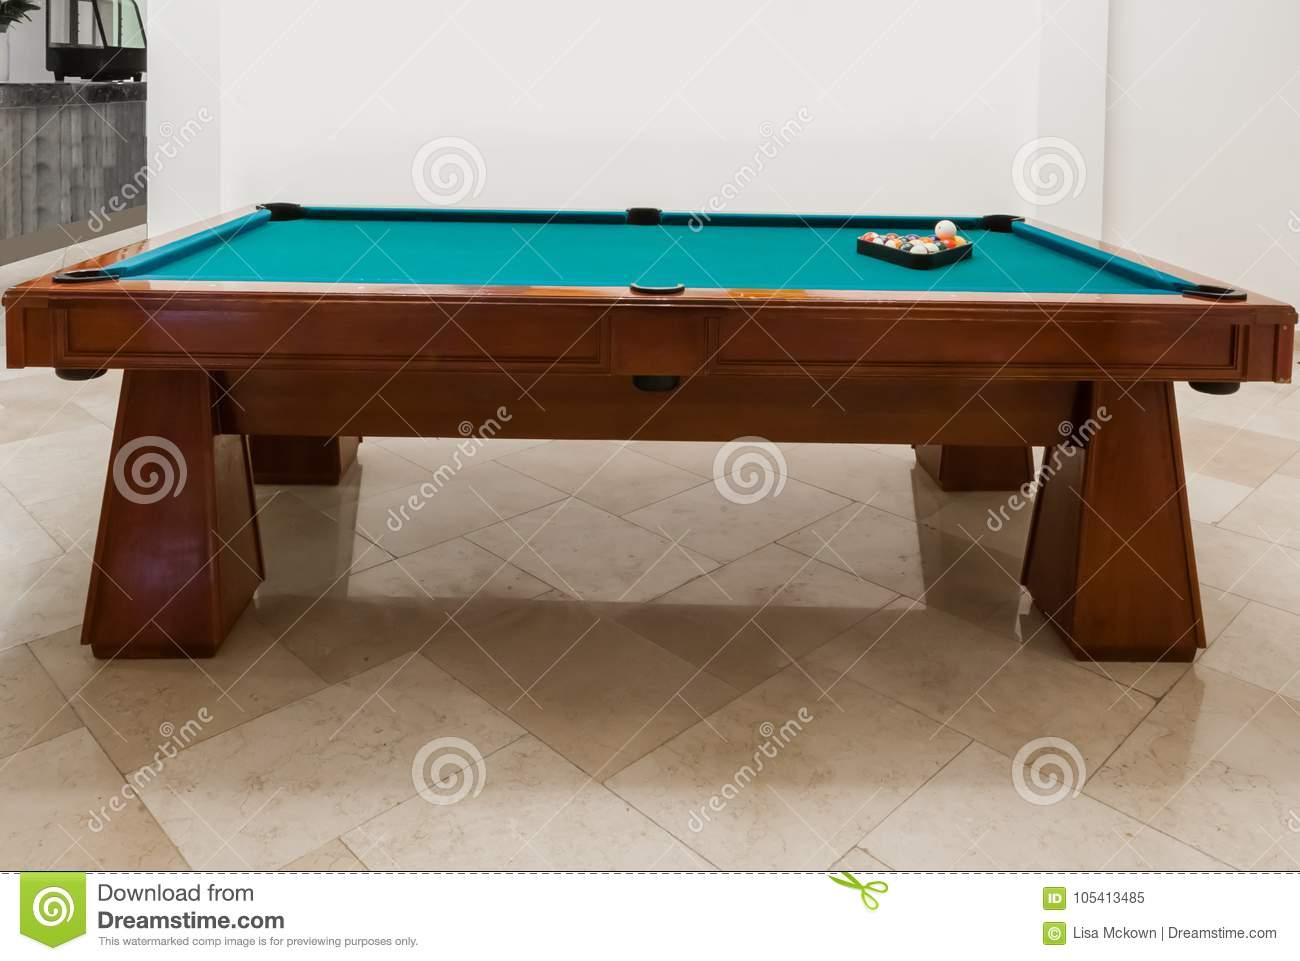 Pool Table With Green Felt Stock Image Image Of Relaxation - Pool table base